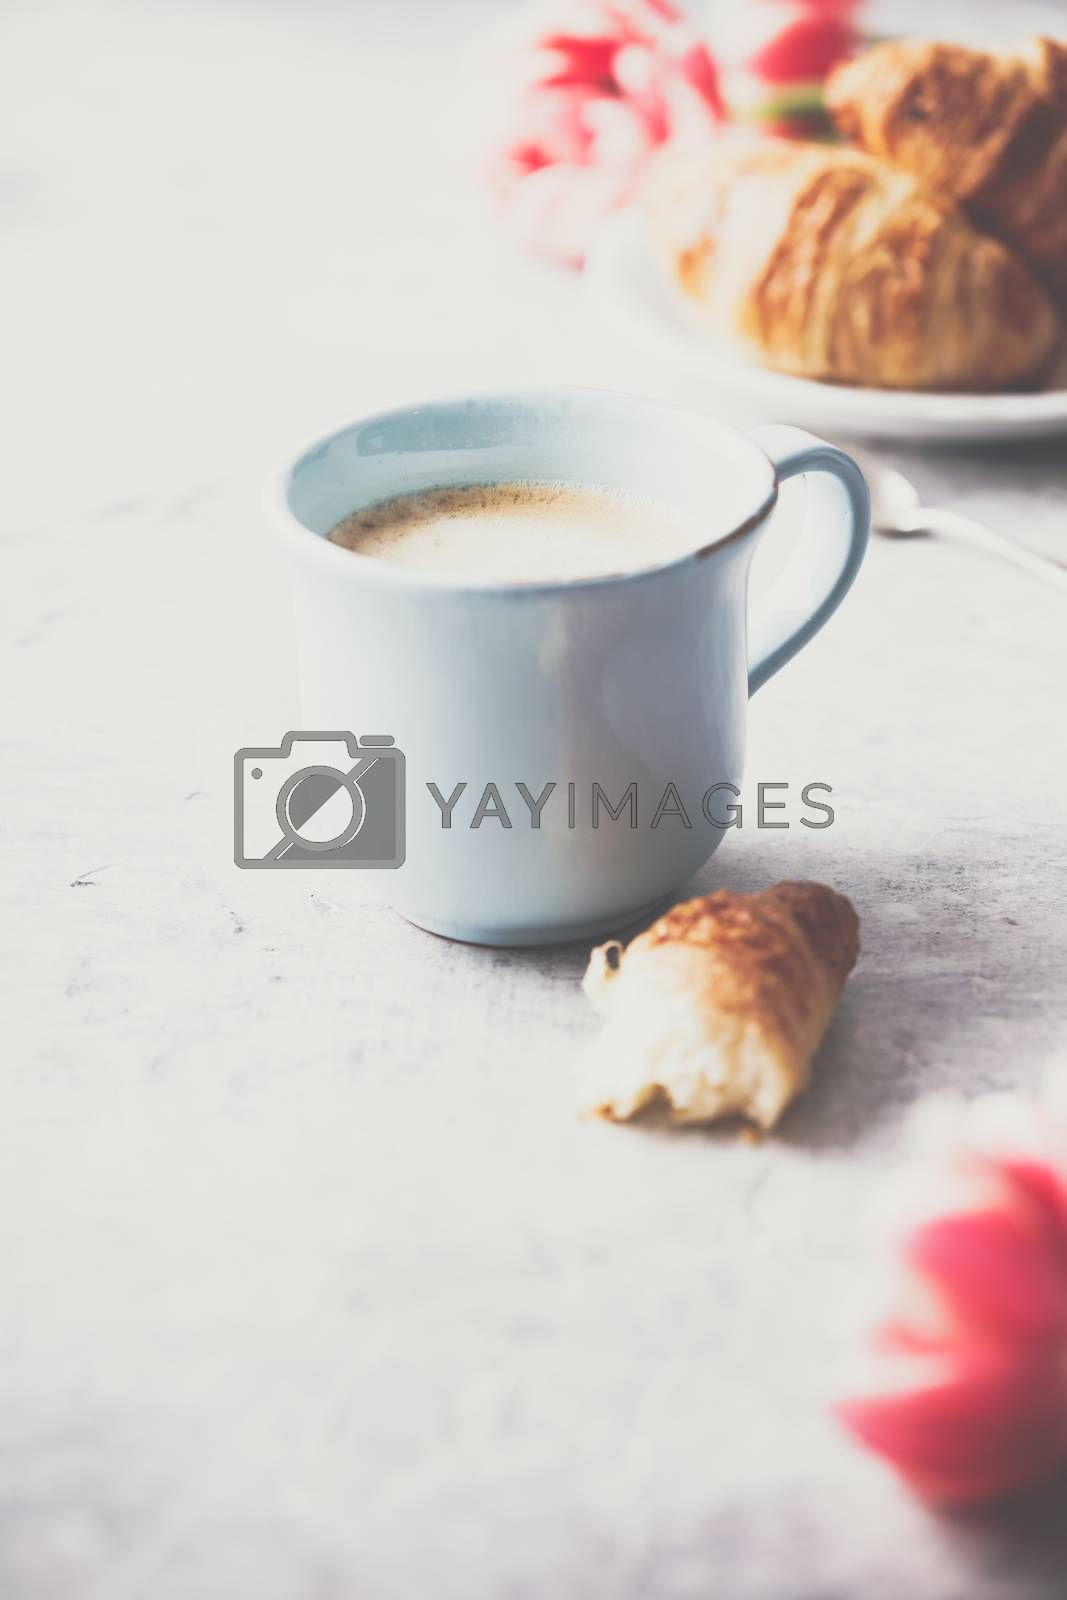 Morning coffee, croissants and spring tulips on light grey backg by klenova